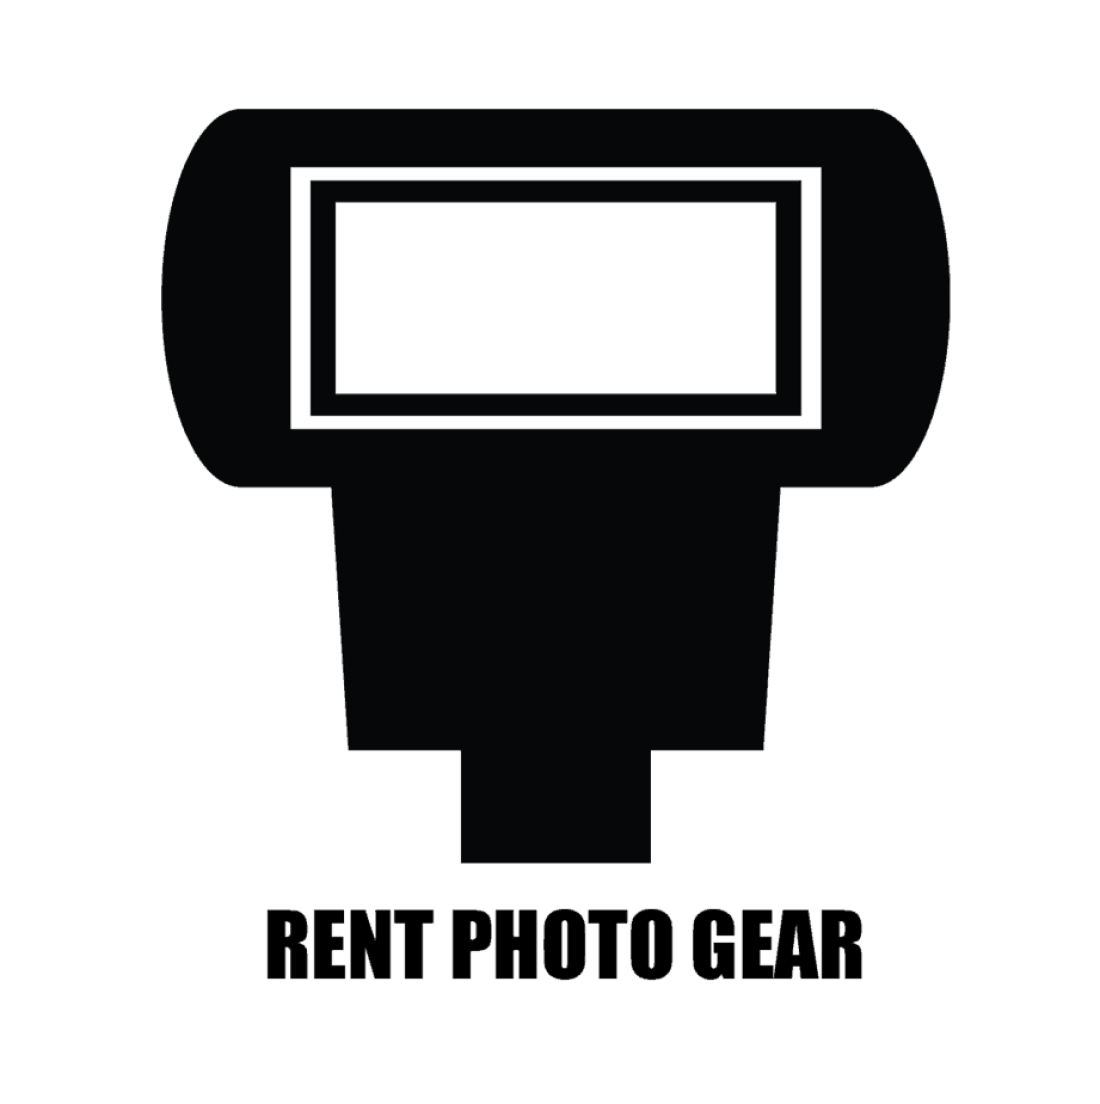 Best Place to Rent Photo Gear